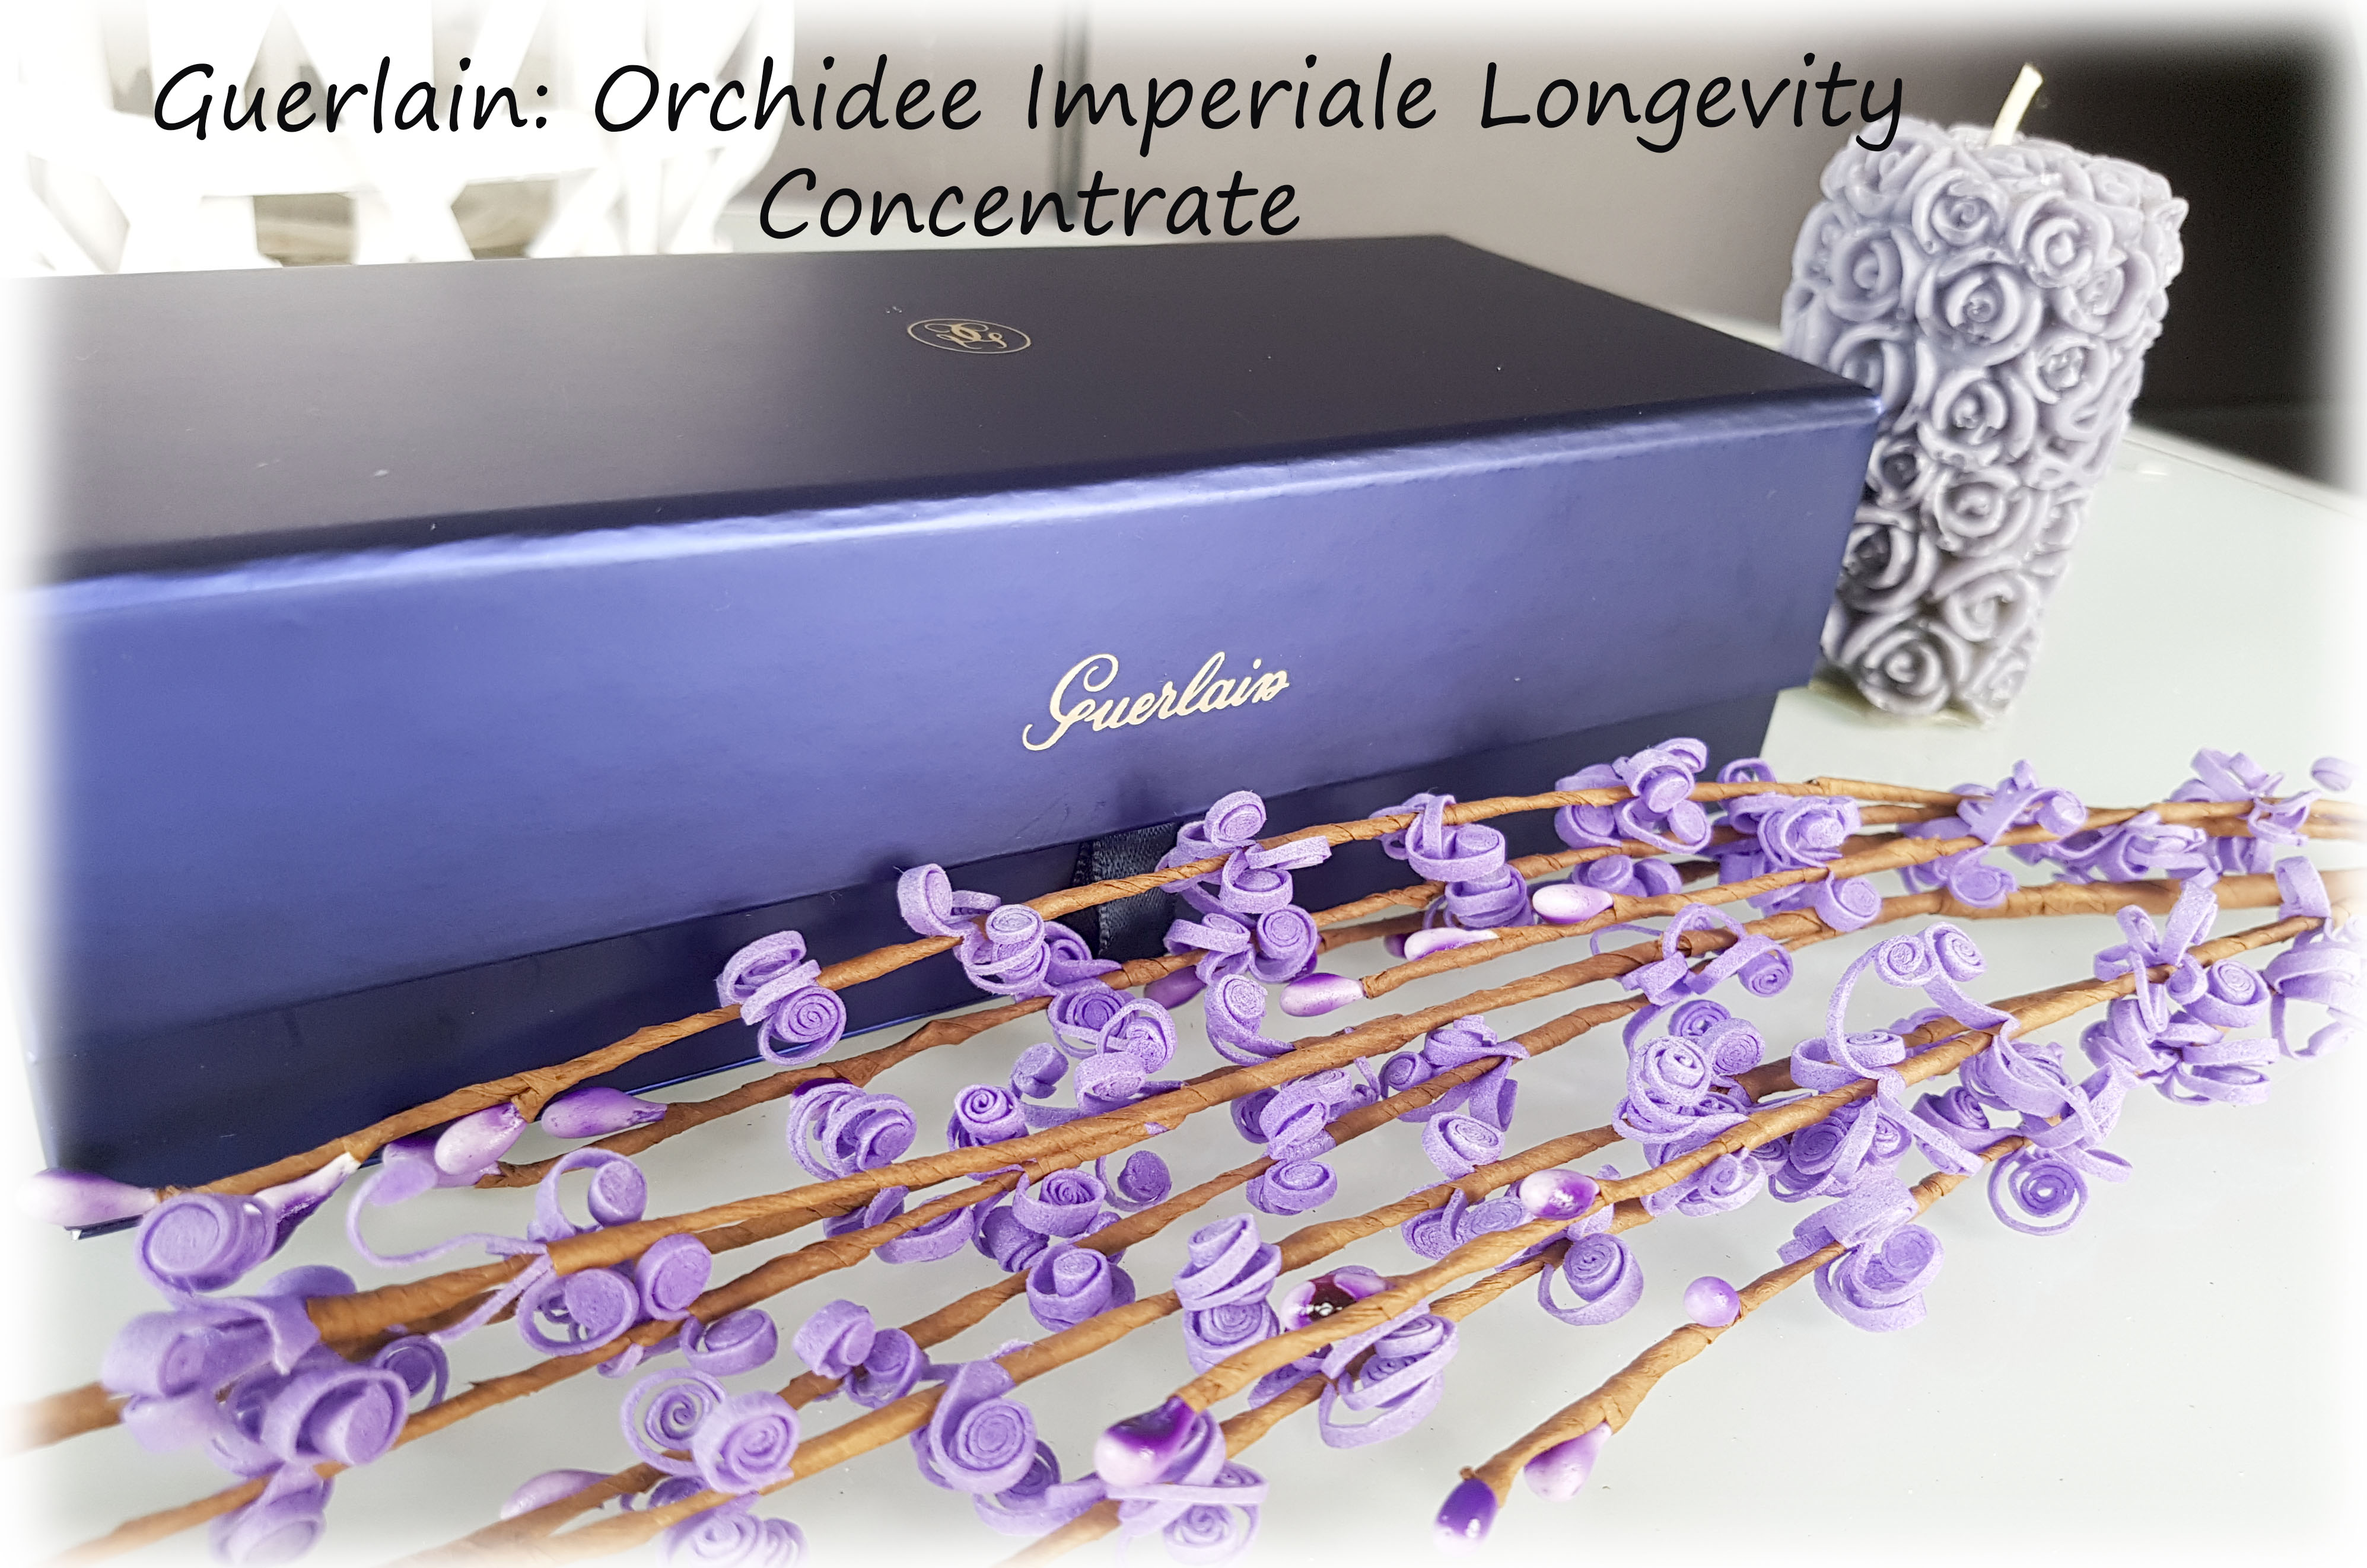 Guerlain: Orchidee Imperiale Longevity Concentrate